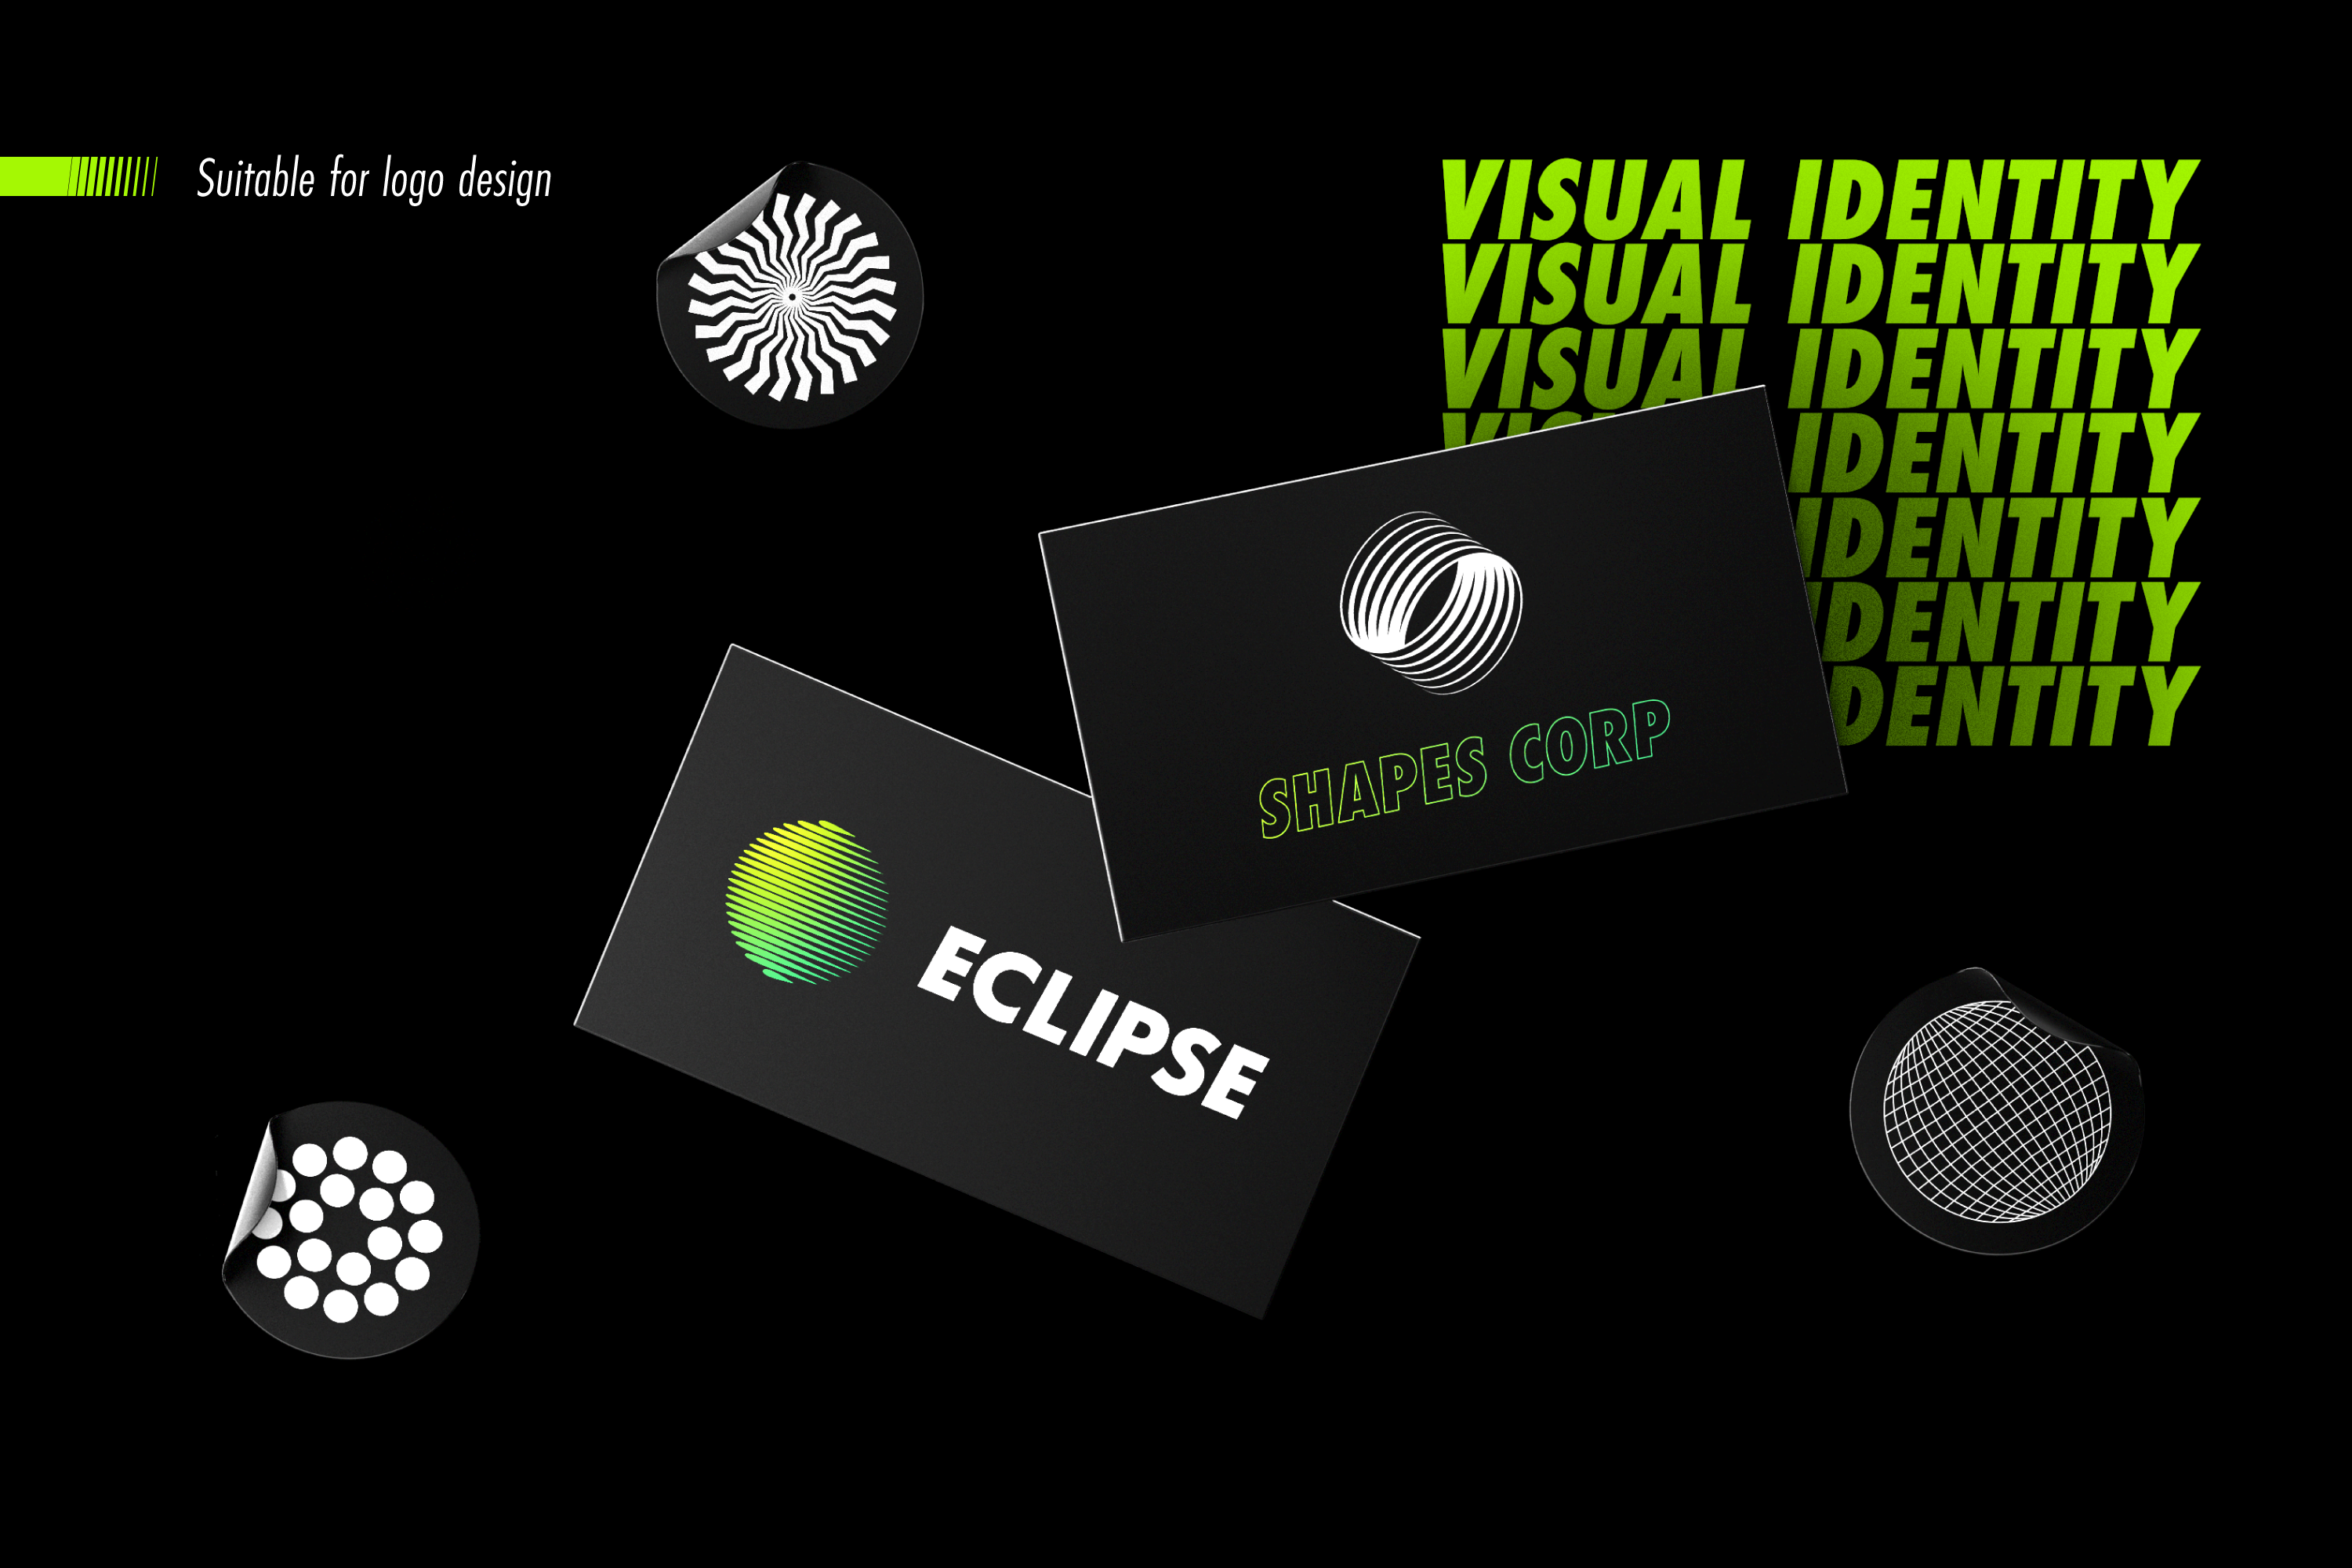 Abstract Shapes collection - 100 design elements example image 7